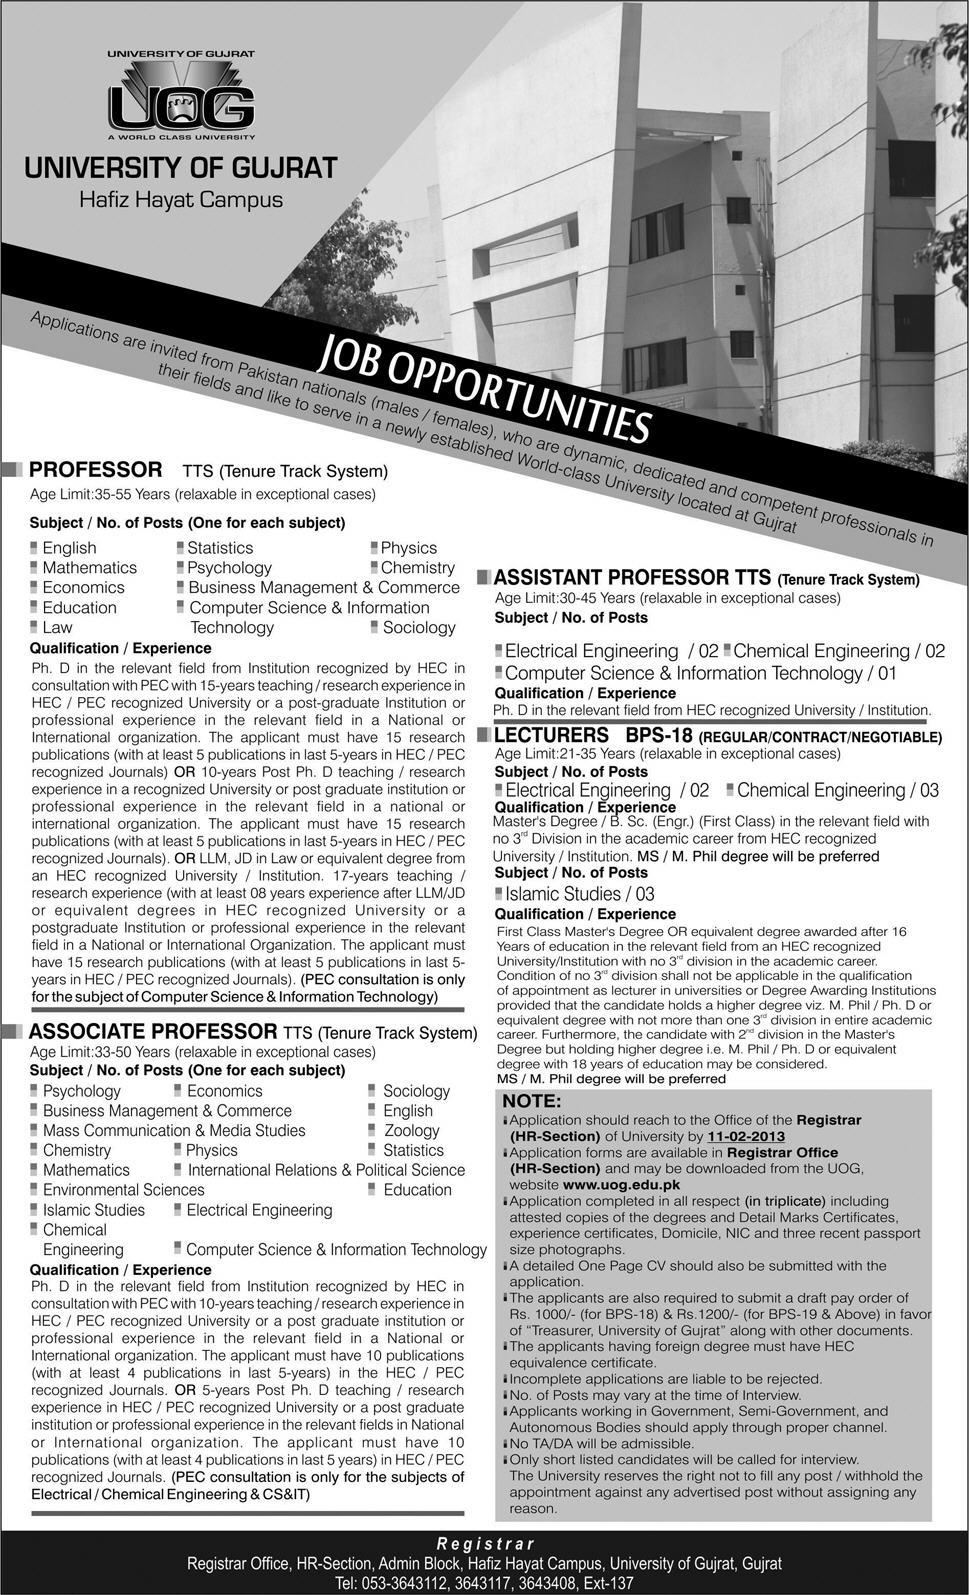 University of Gujrat Hafiz Hayat Campus Jobs 2013